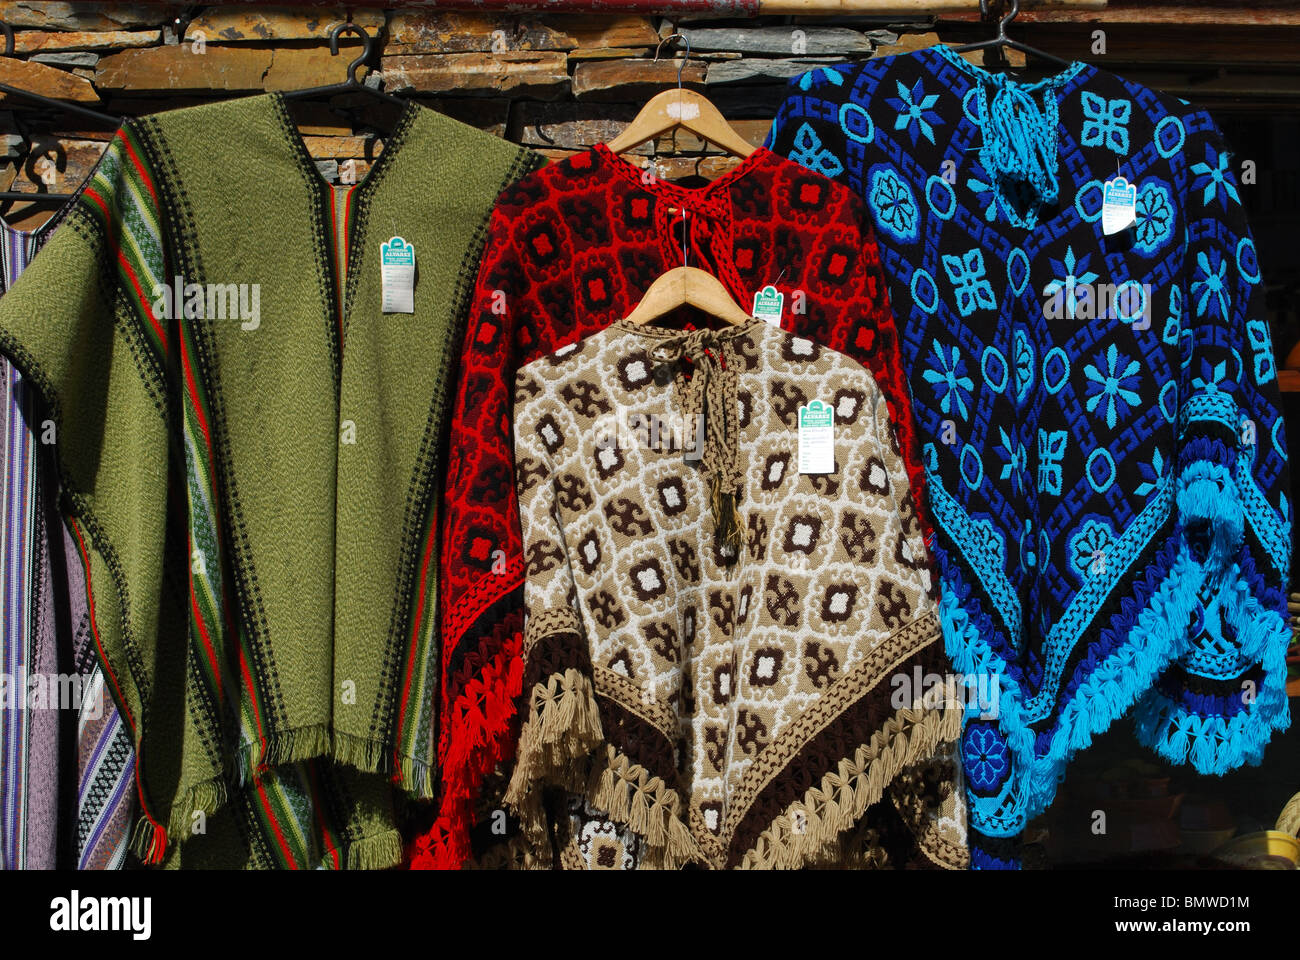 Shop selling locally made ponchos, Trevelez, Las Alpujarras, Granada Province, Andalucia, Spain, Western Europe. - Stock Image